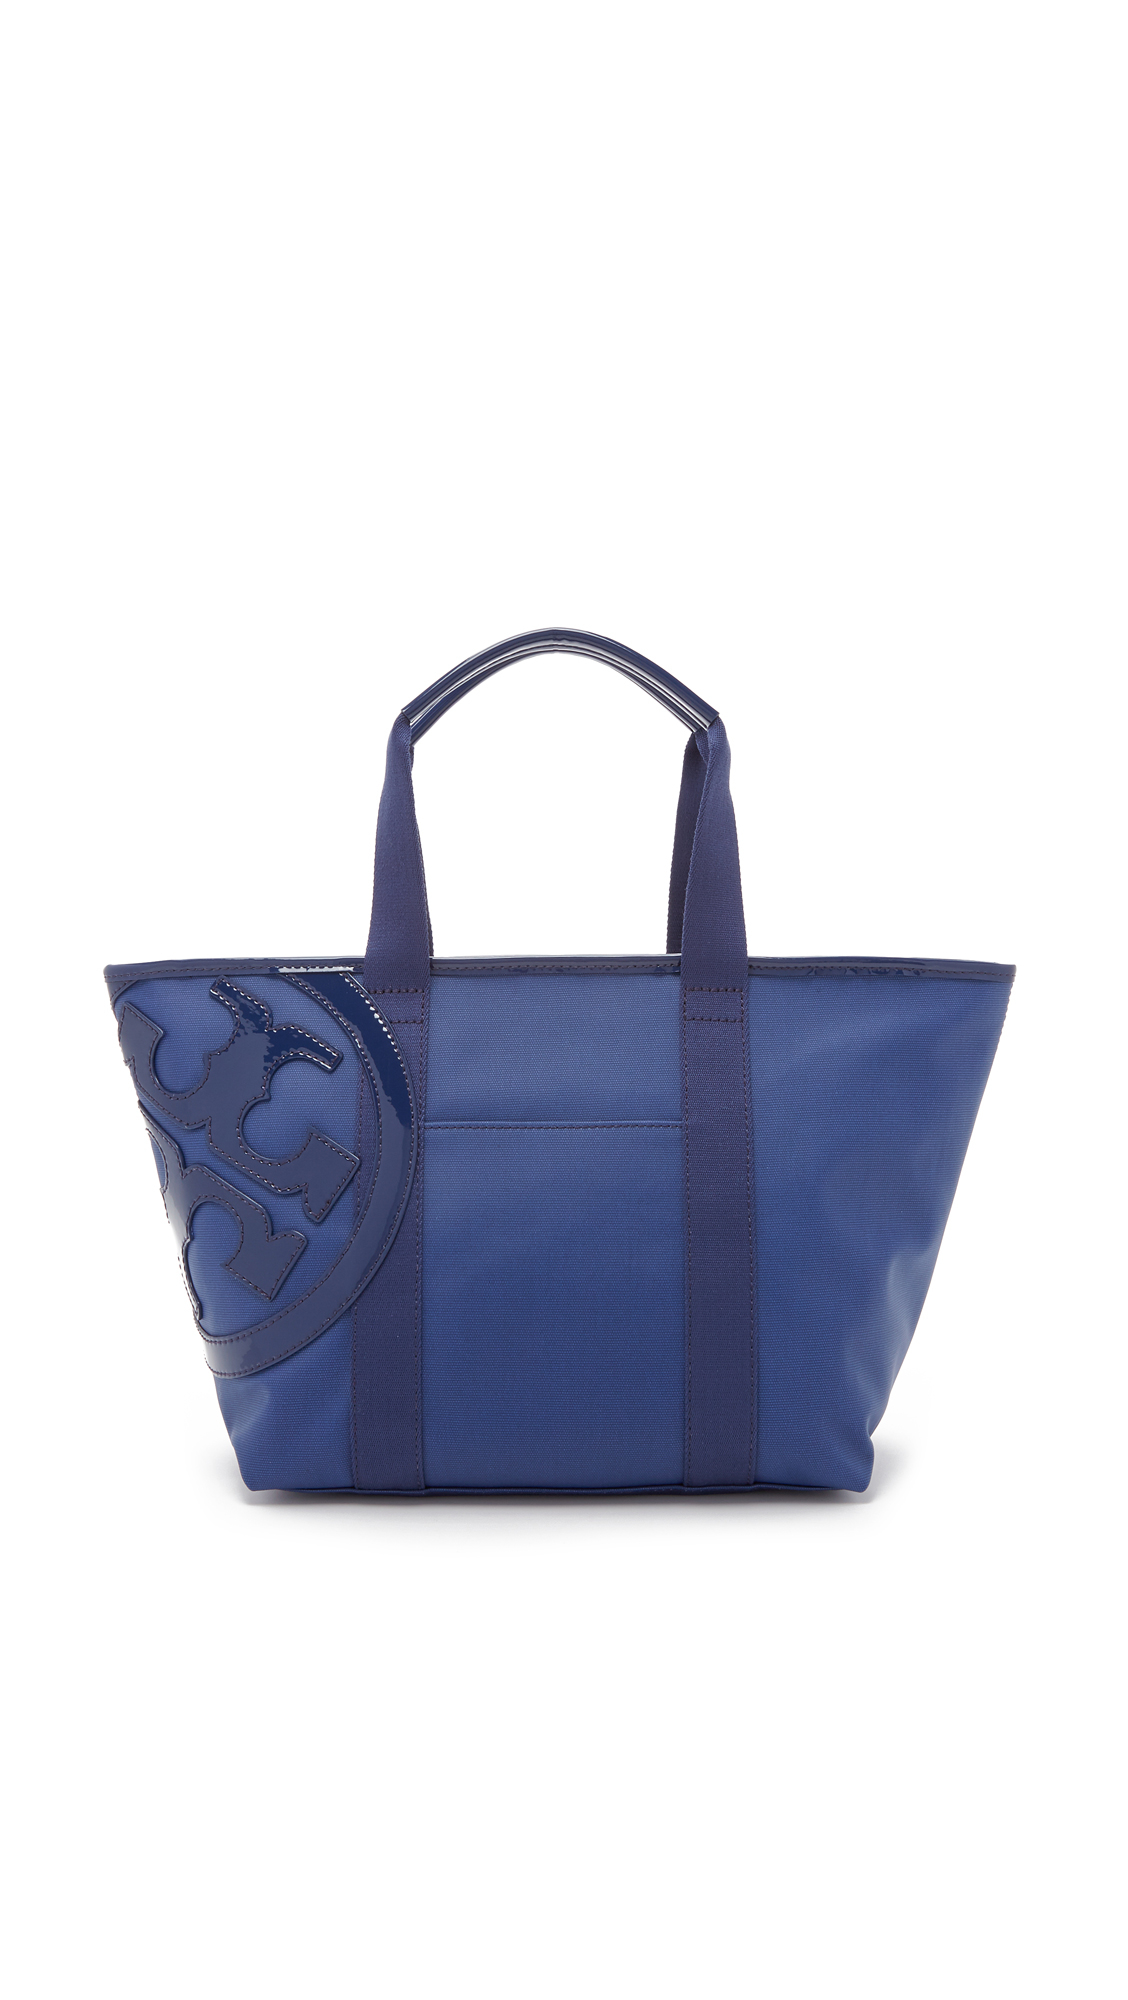 Tory burch Beach Canvas Tote in Blue | Lyst